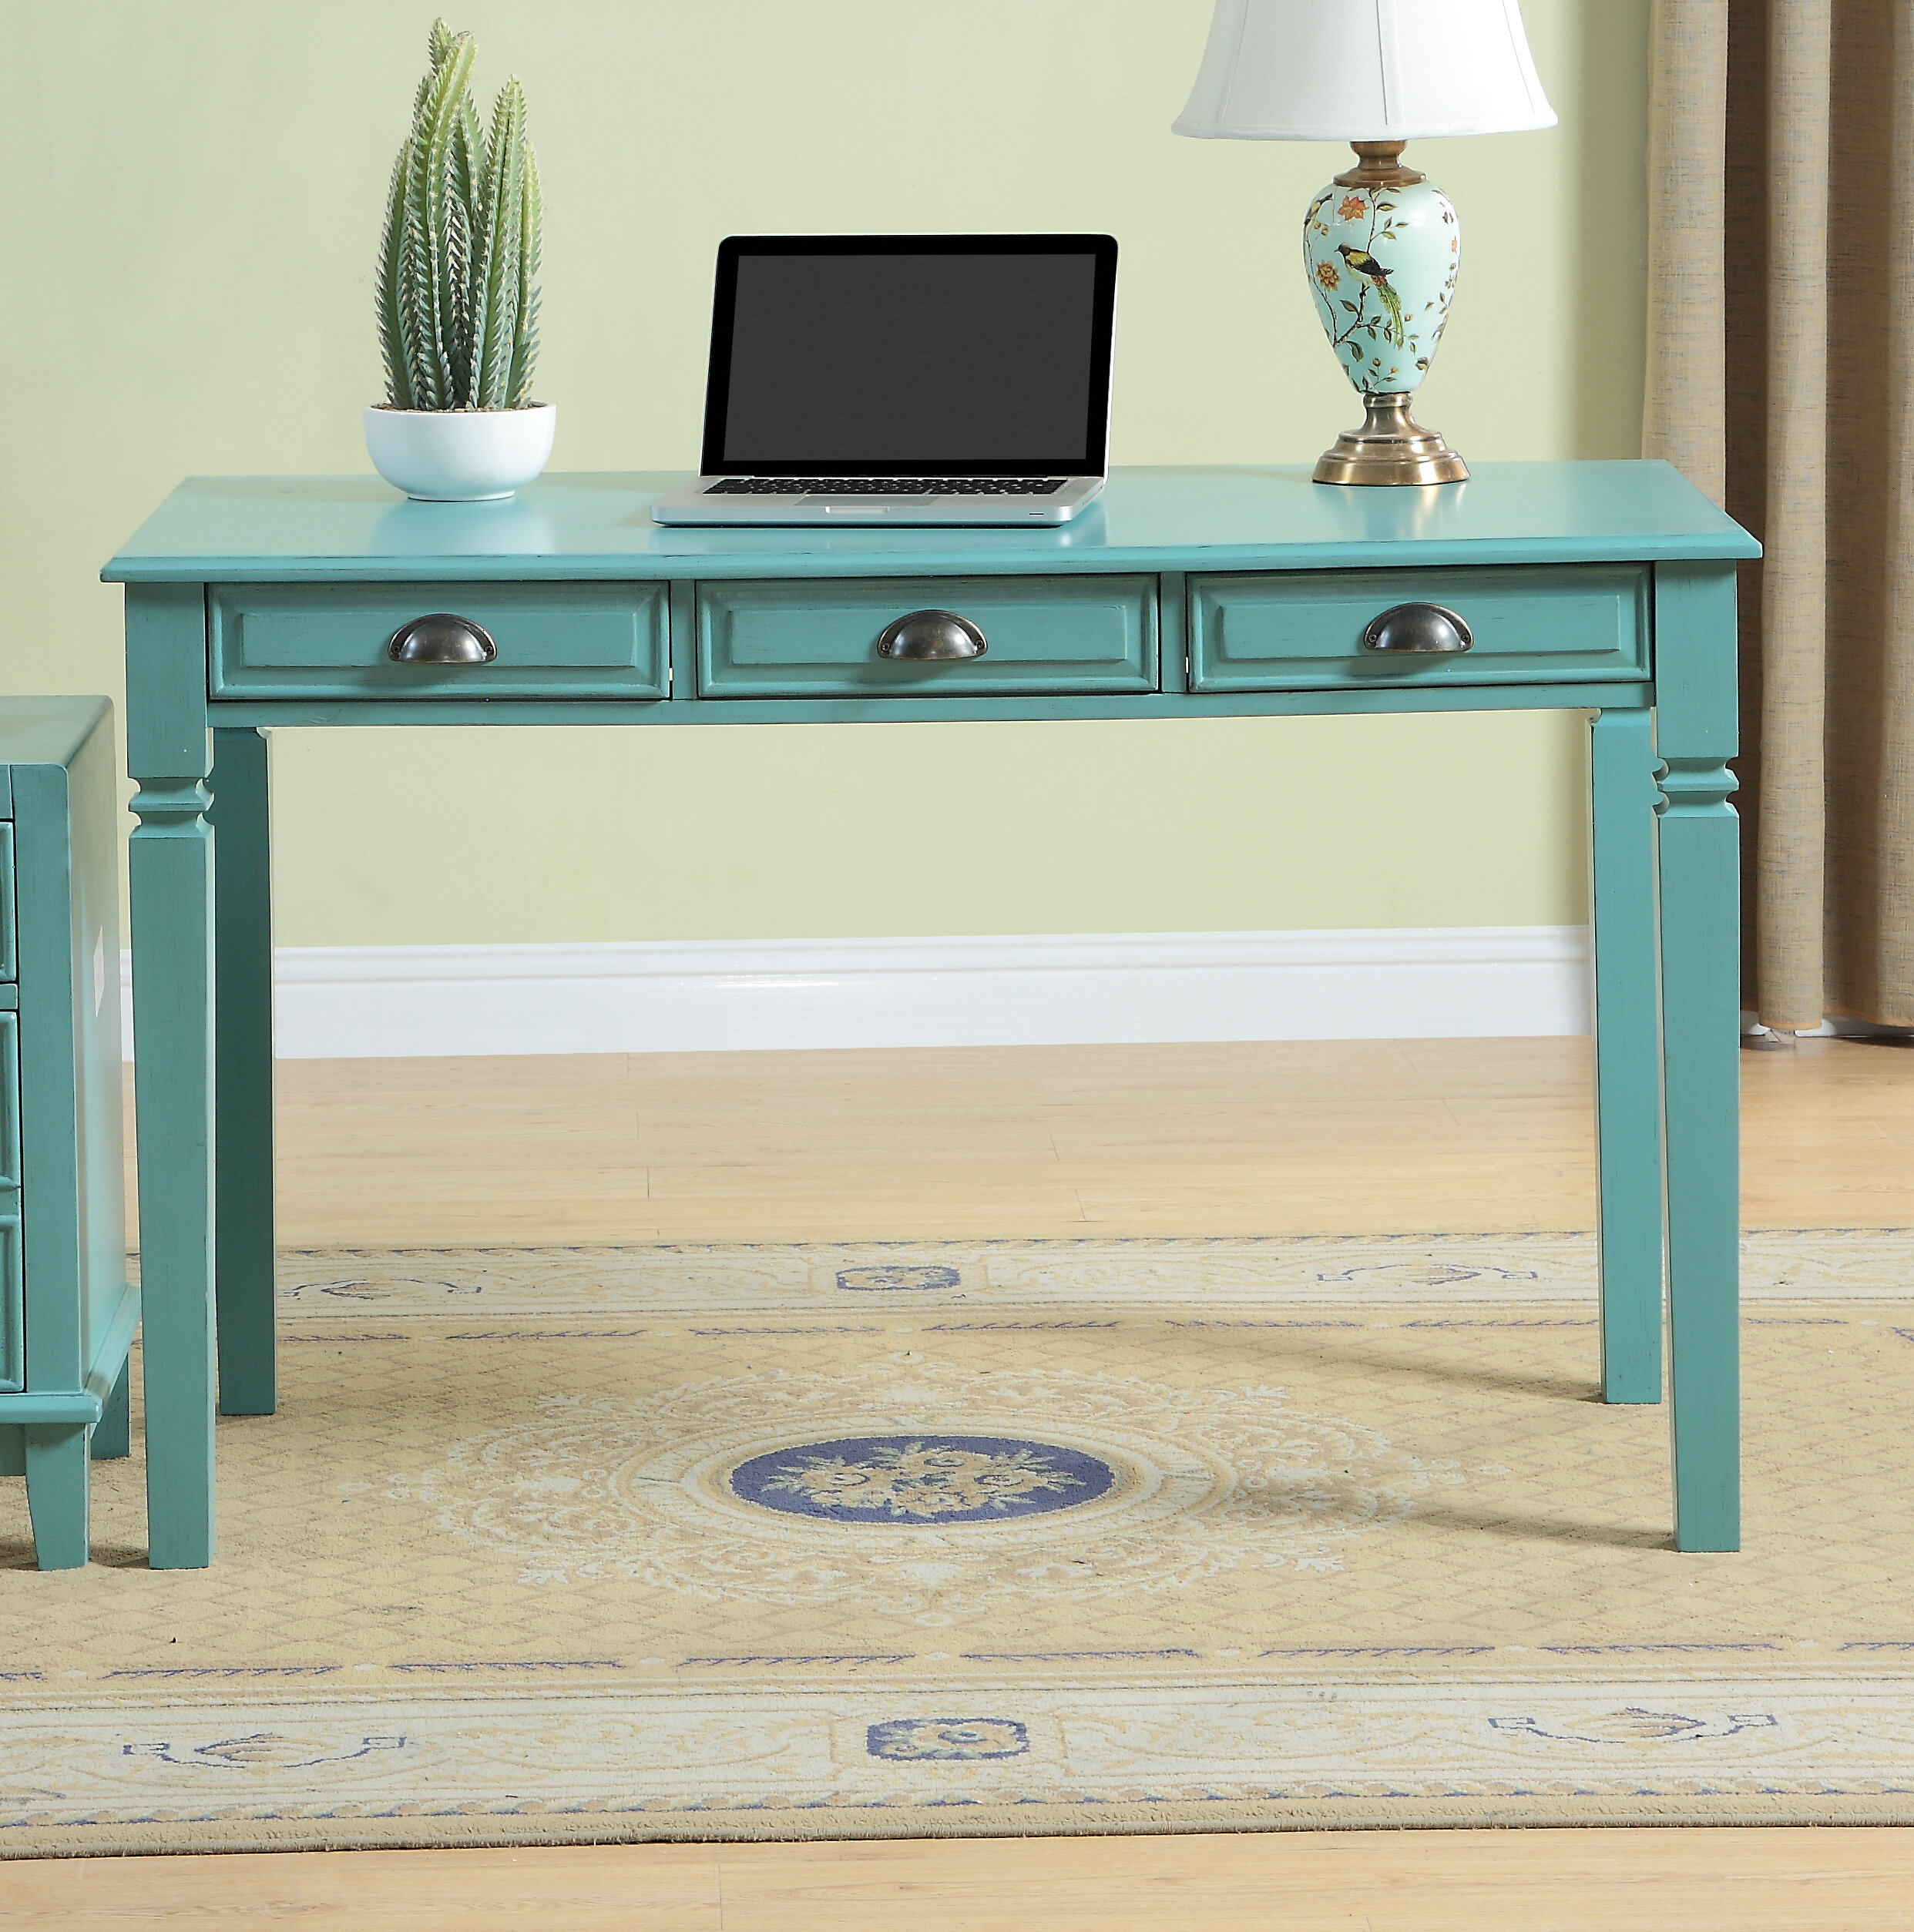 home overstock nordic free drawer garden desk shipping drawers today product